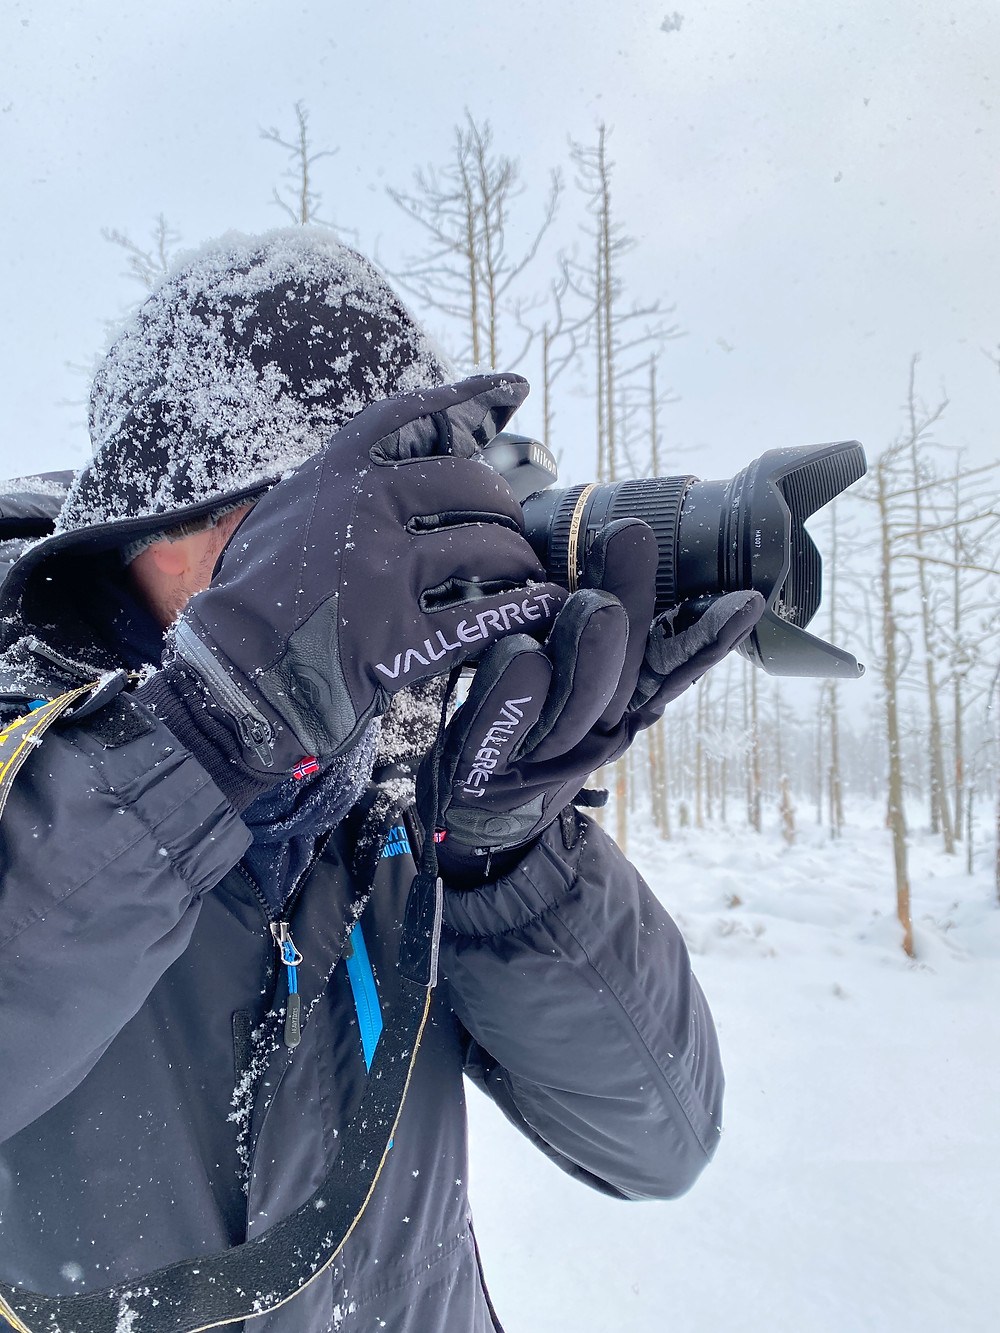 Using a lens hood has several benefits. During a snowfall it prevents the front element from getting wet